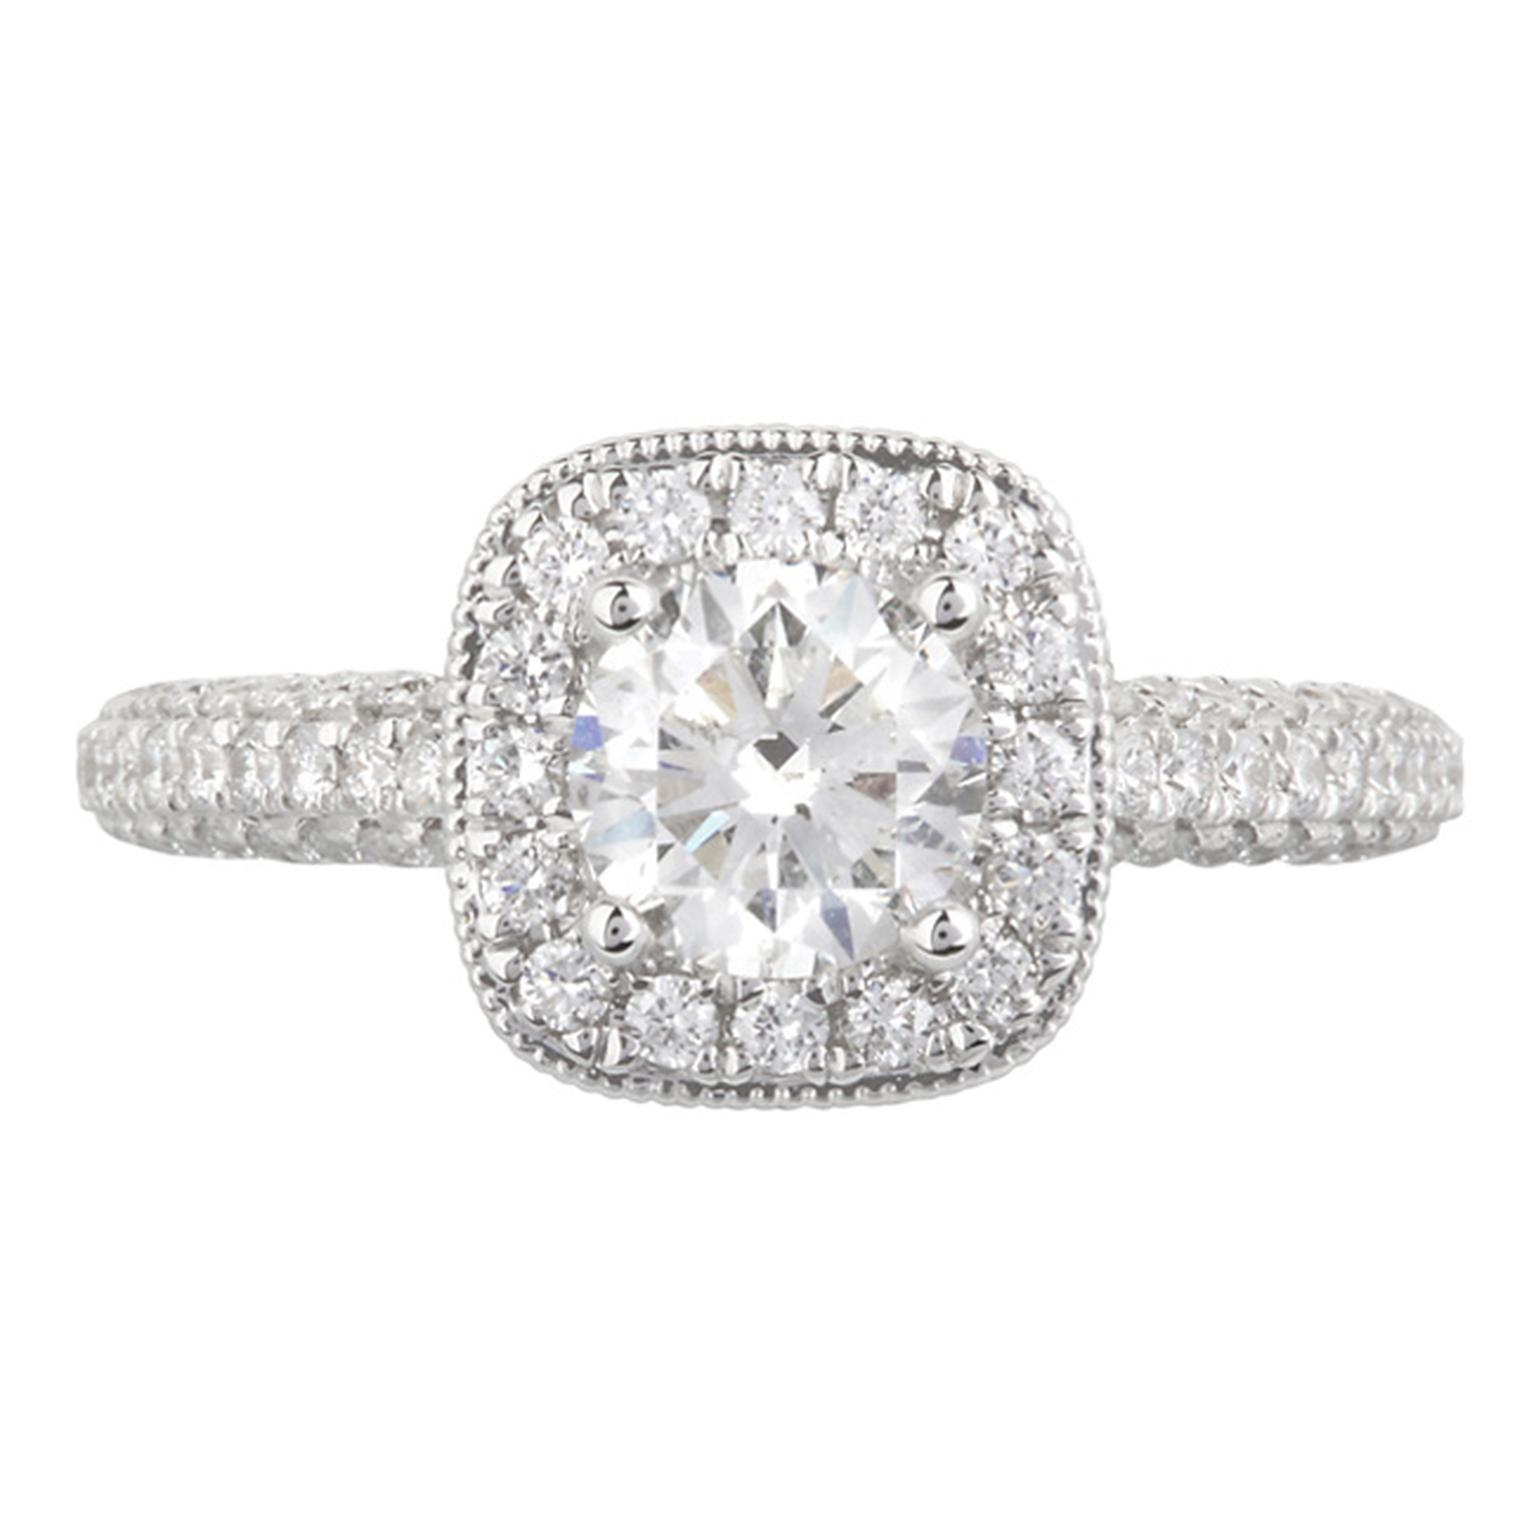 Vera Wang Love ring_1_20130407_Main